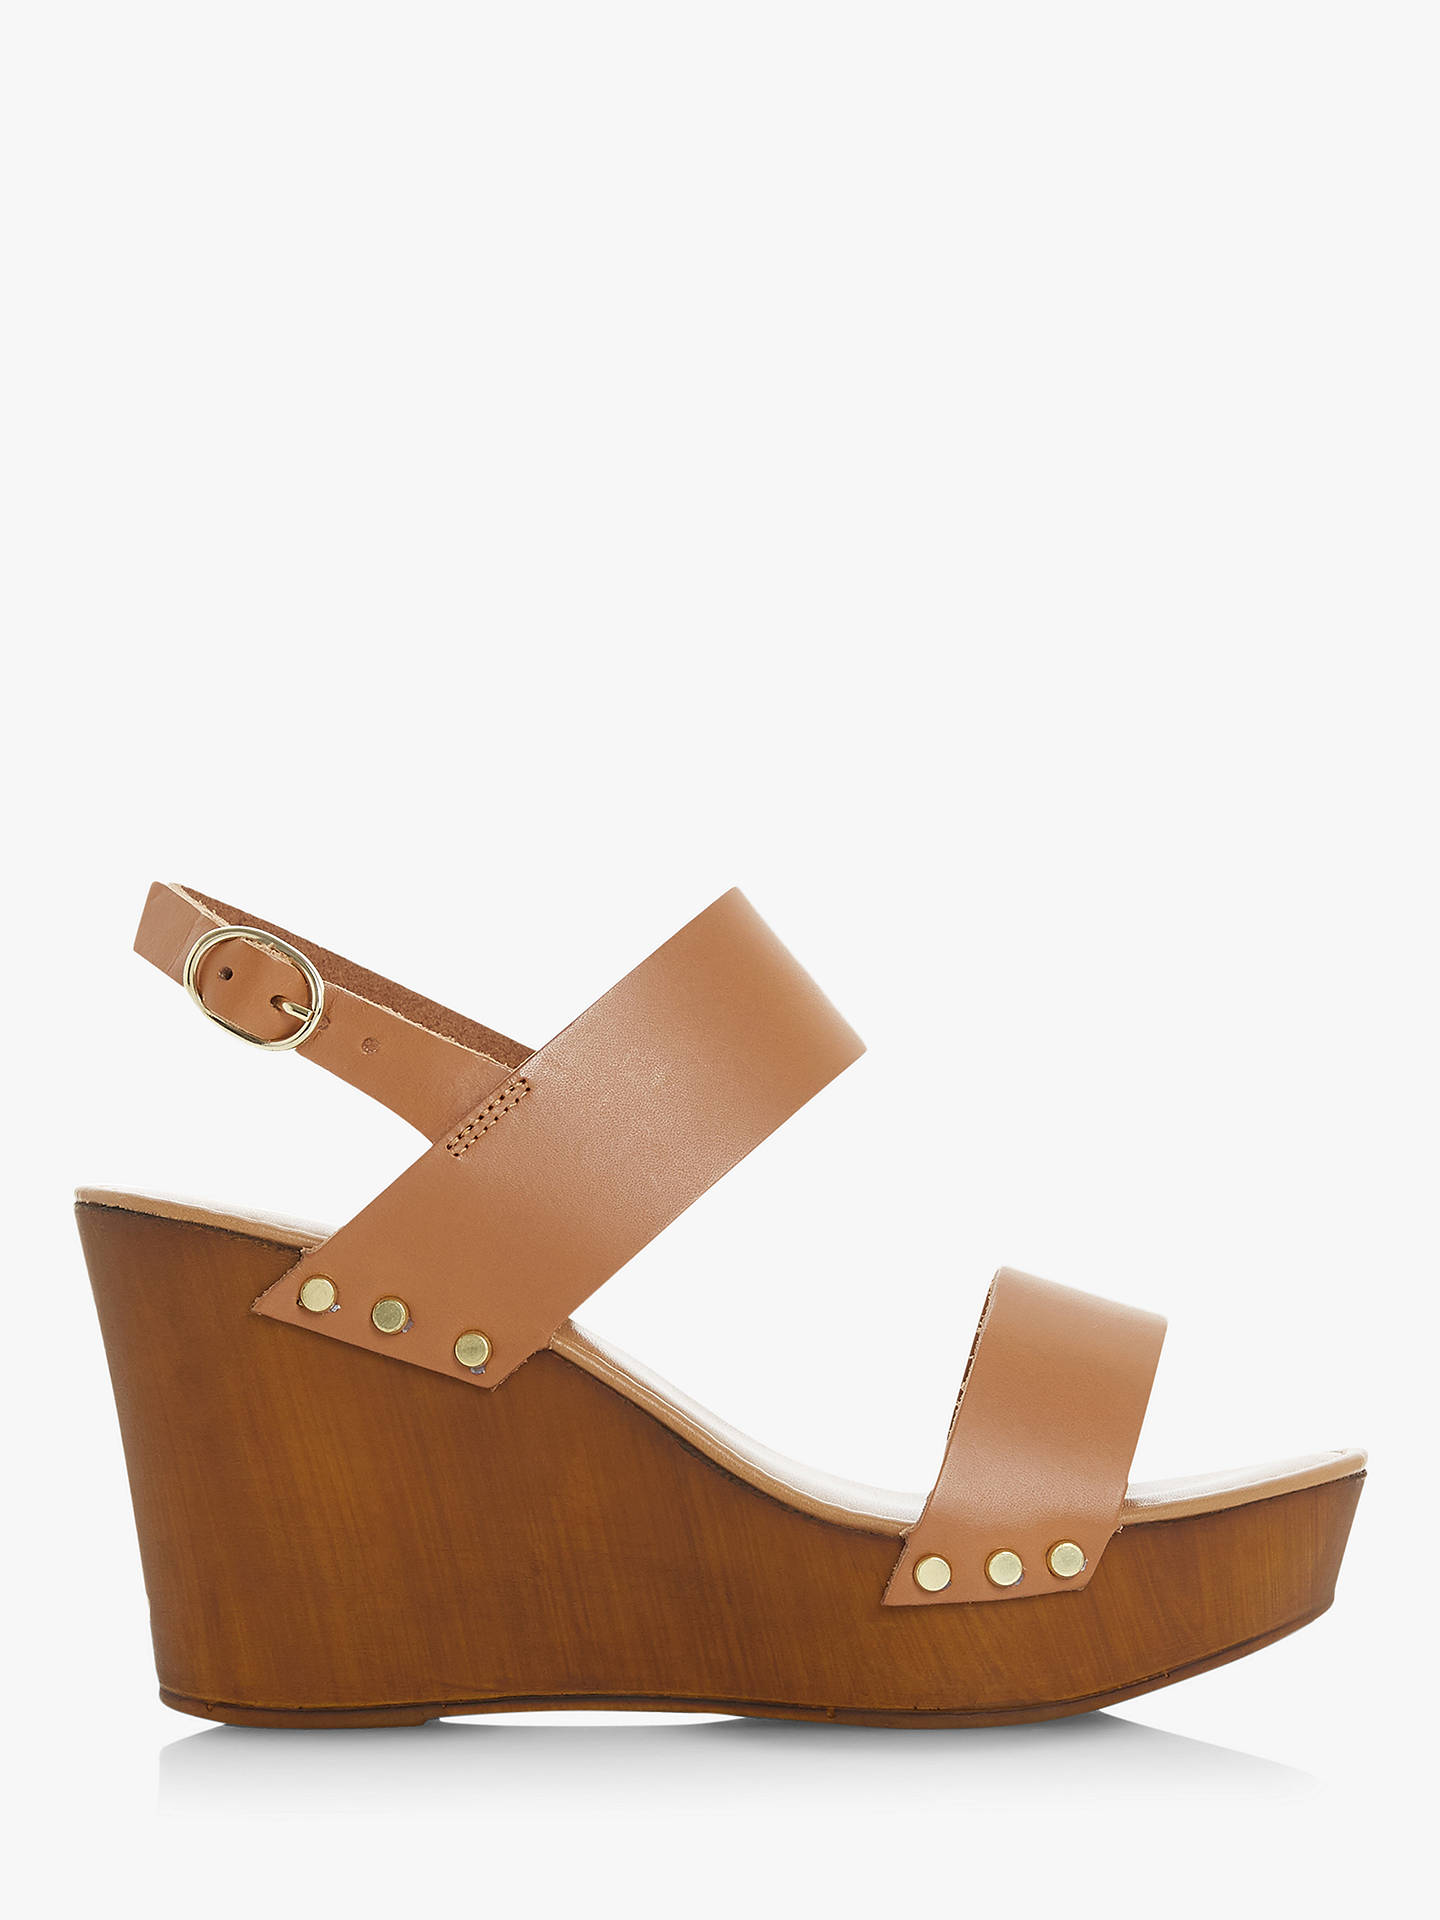 5b840a57d8a Buy Dune Kimmey Wooden Platform Wedge Sandals